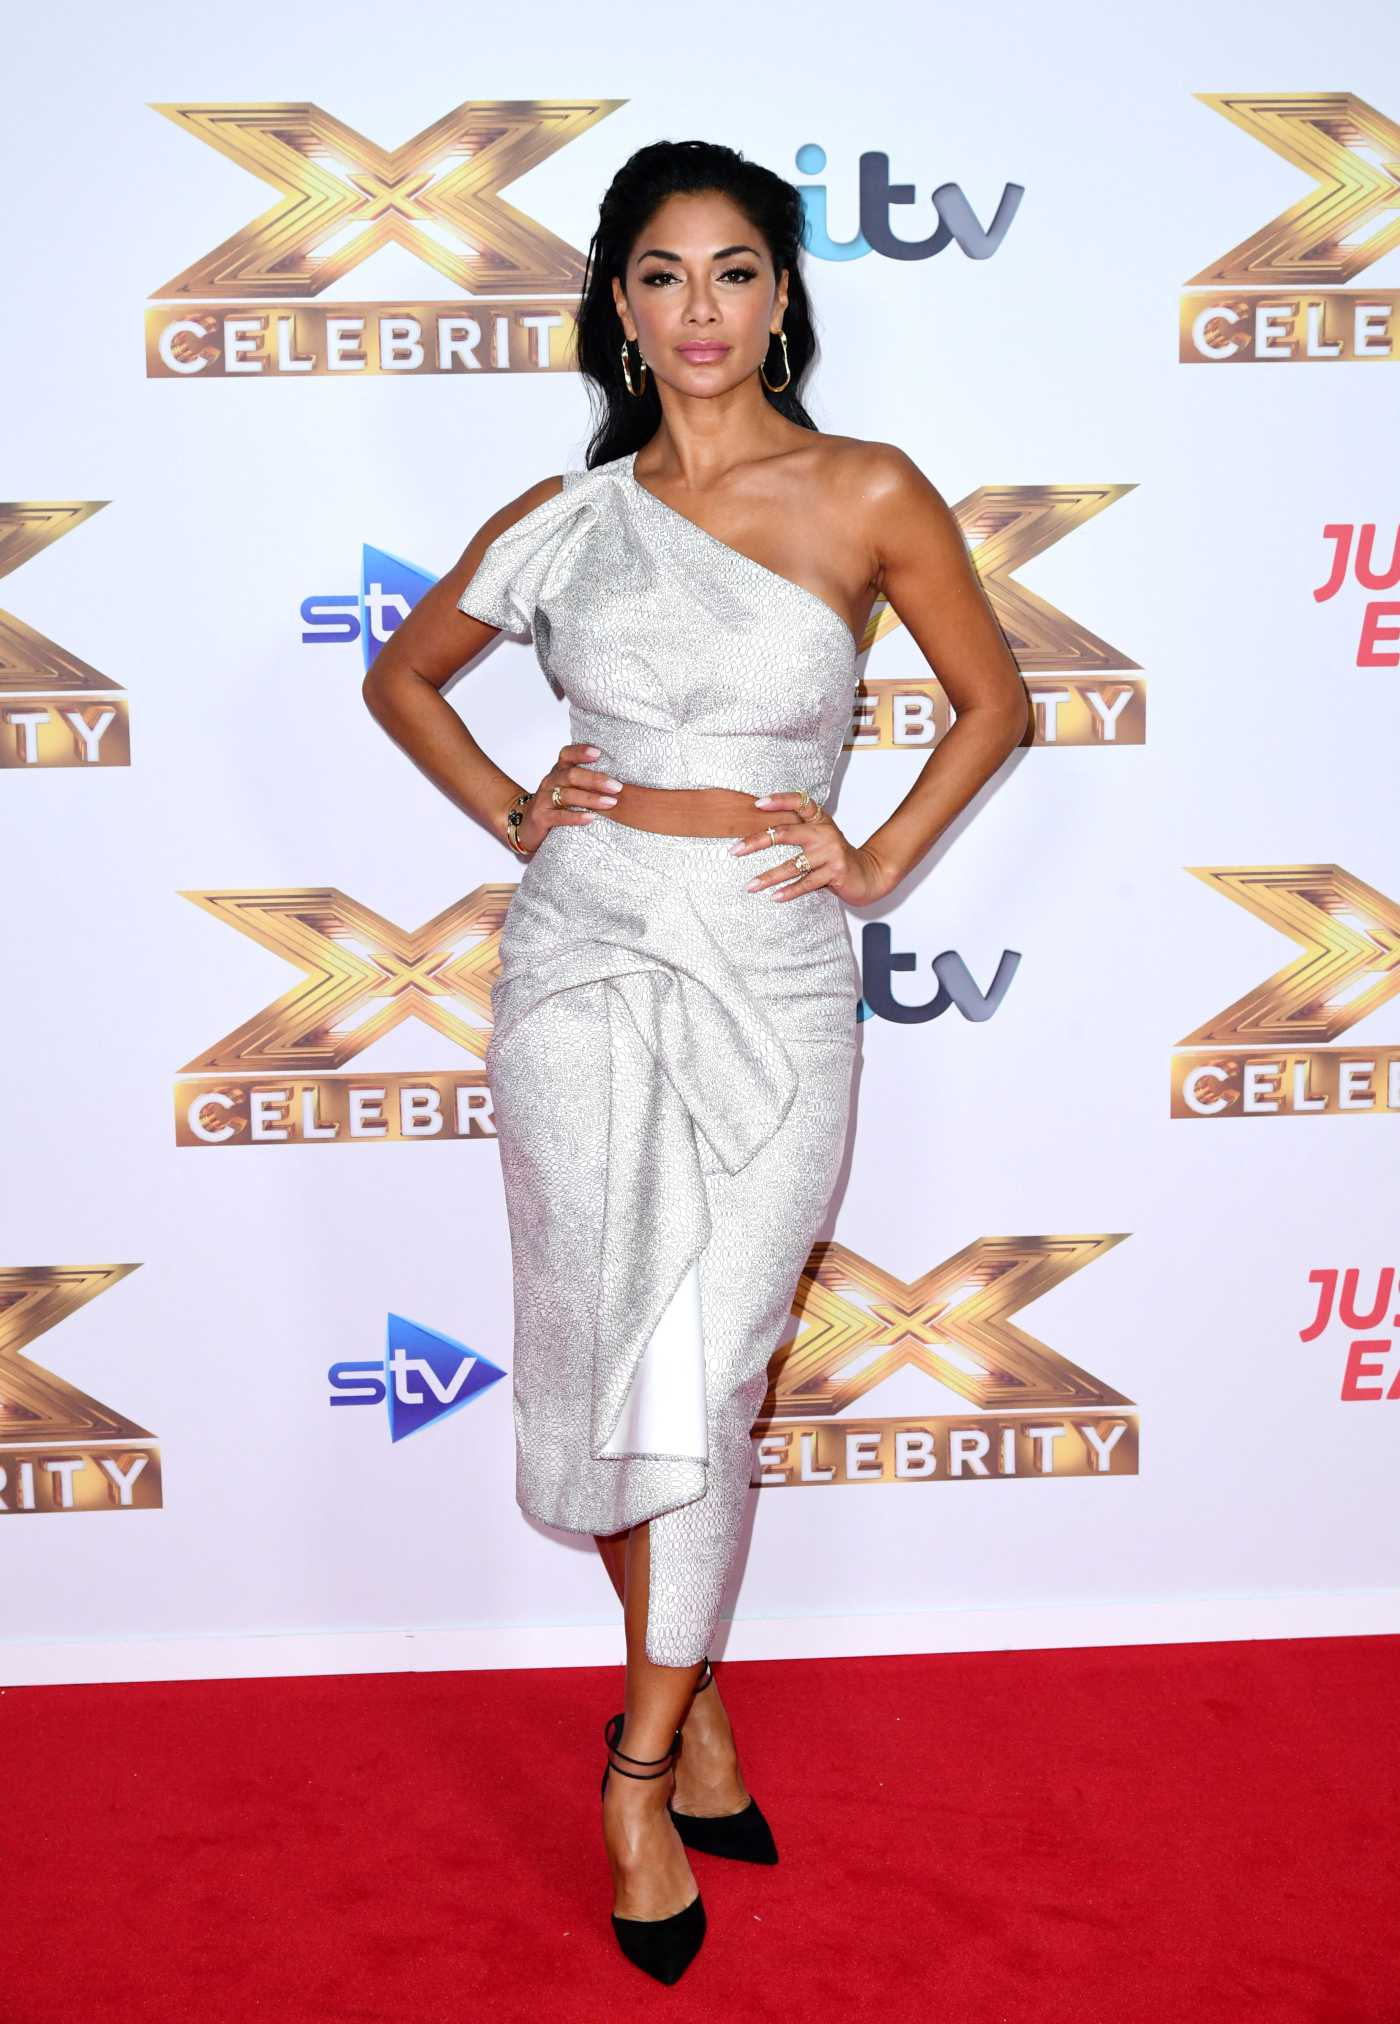 Nicole Scherzinger Attends the X-Factor Celebrity Photocall in London 10/09/2019